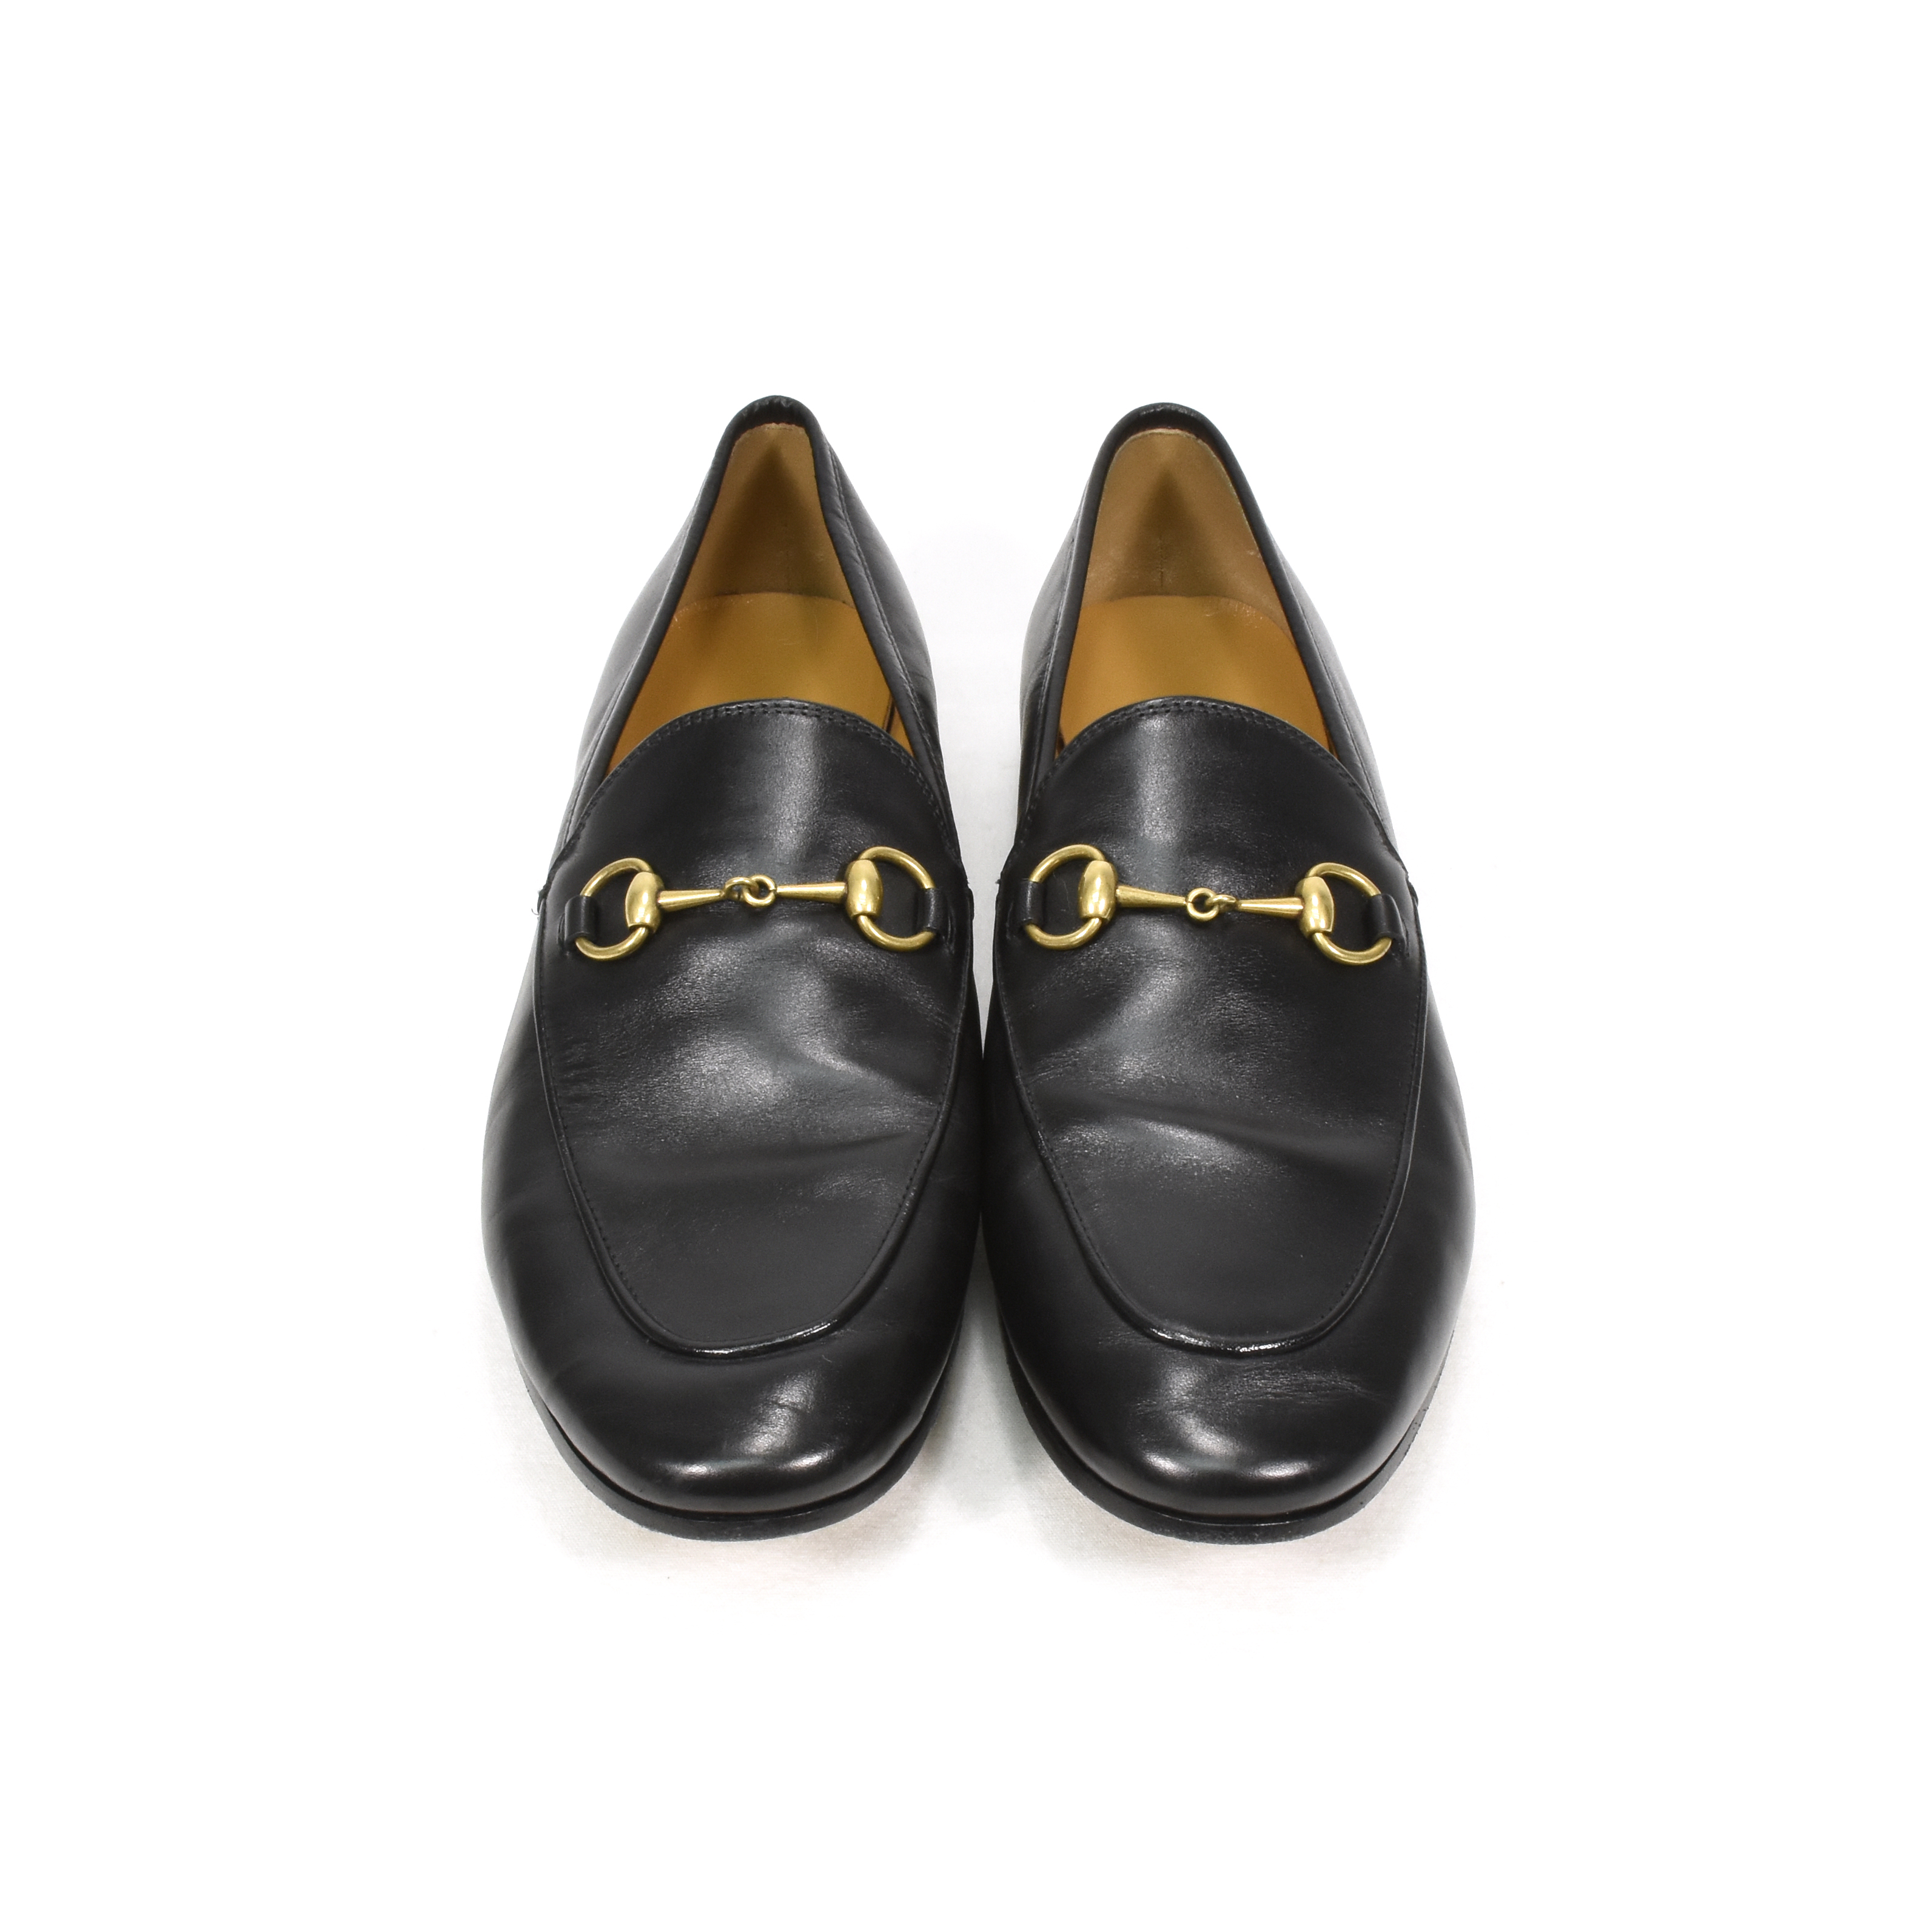 ab765479617 Authentic Second Hand Gucci Jordaan Loafer (PSS-051-00183)